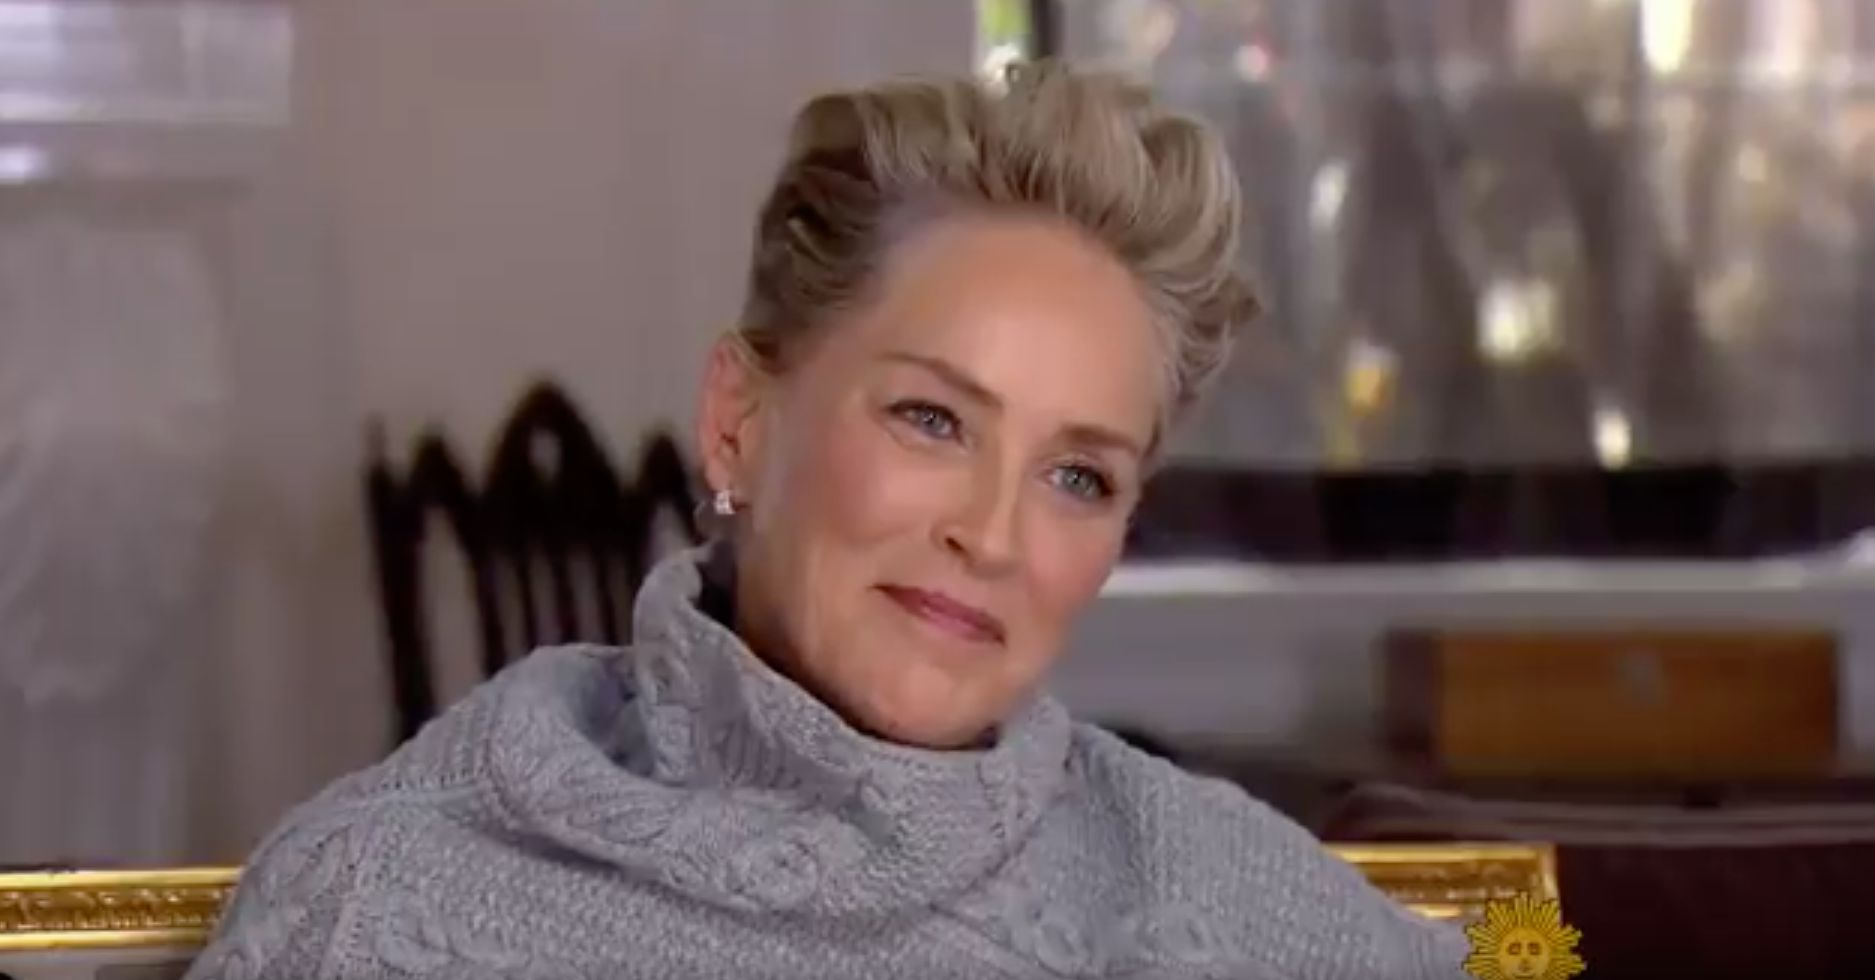 Sharon Stone laughs heartbreakingly when asked whether she's experienced sexual harassment